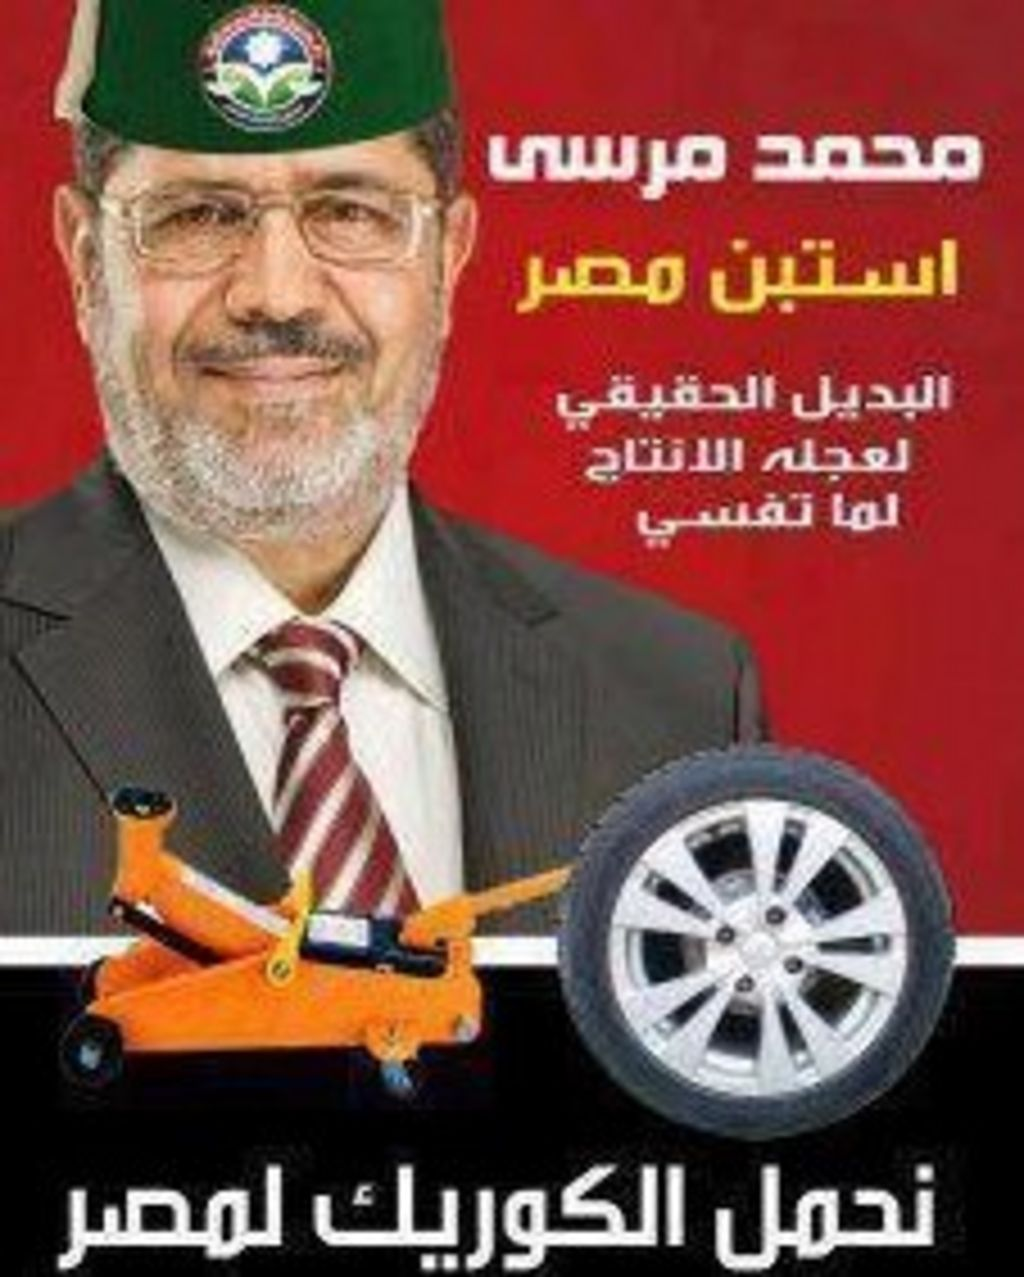 Egyptian satirists laugh at presidential candidates